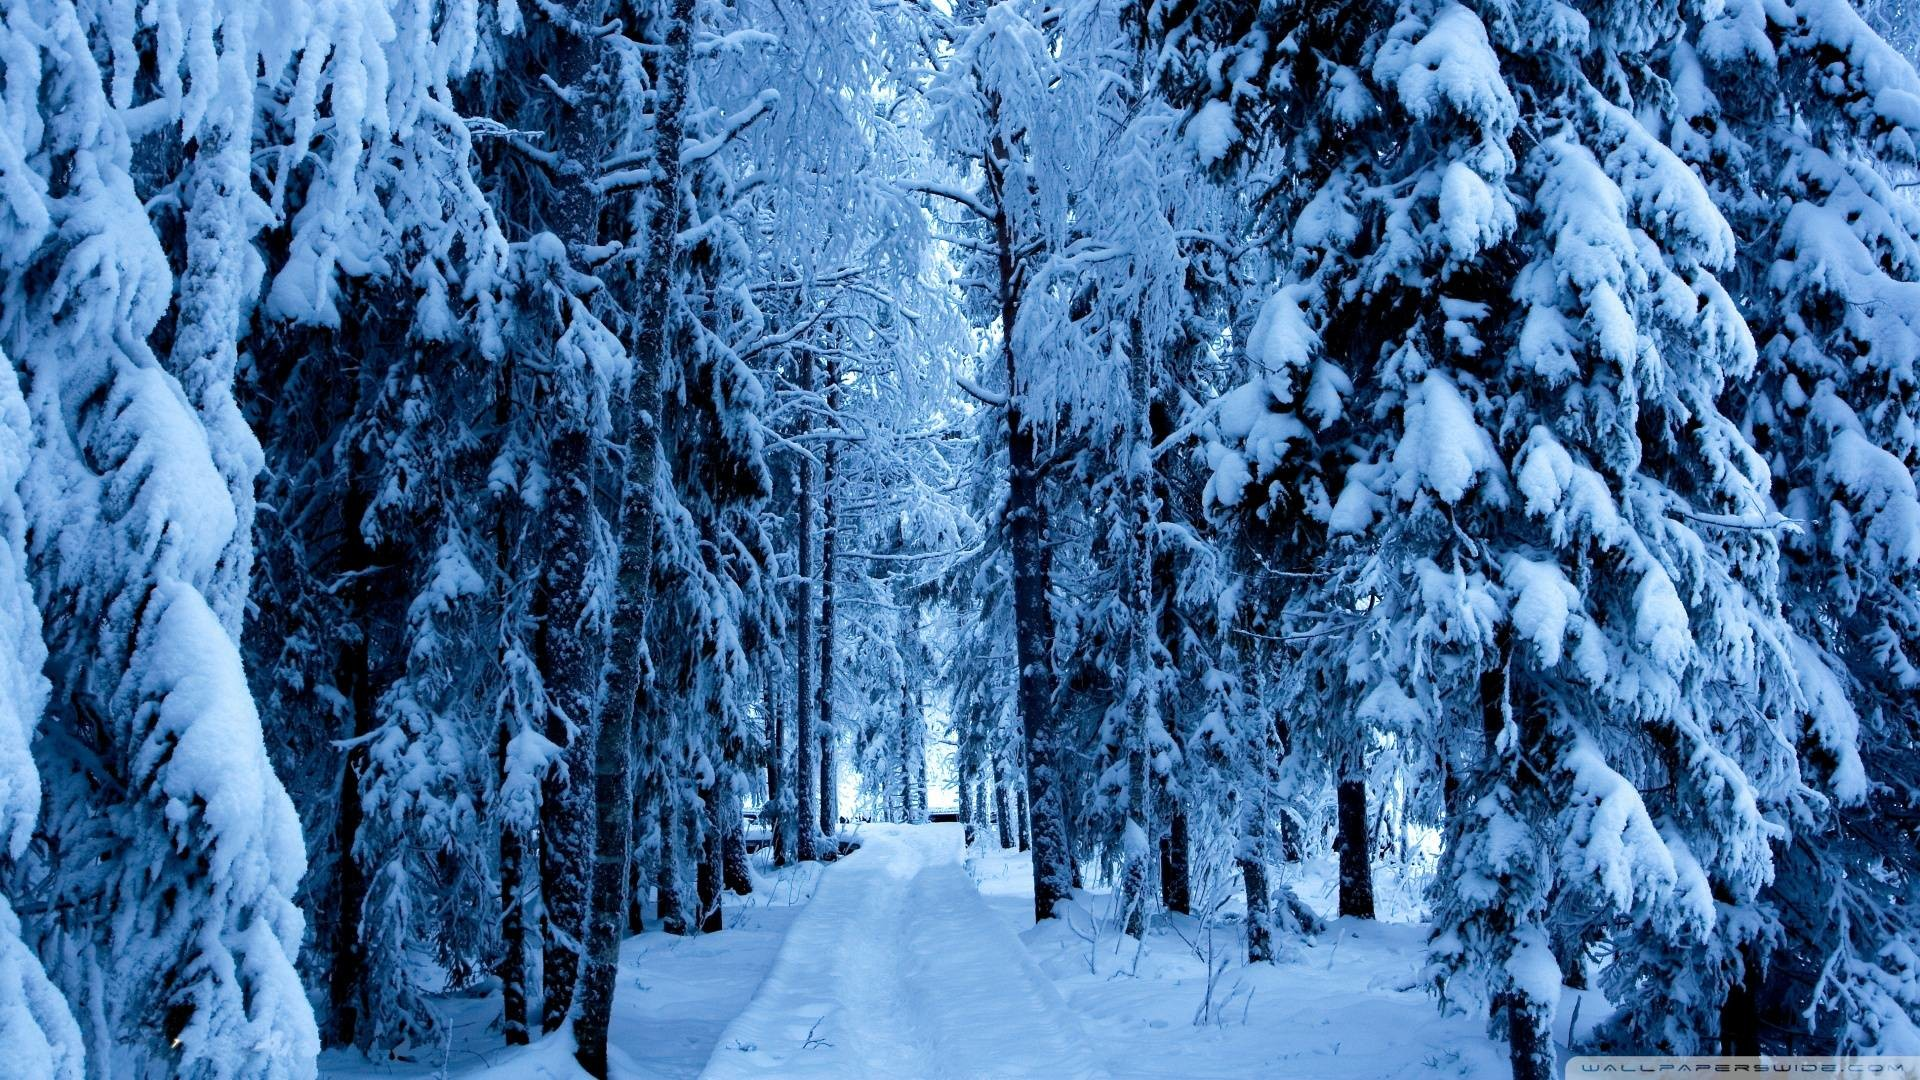 Wallpapers For > Snowy Forest Backgrounds